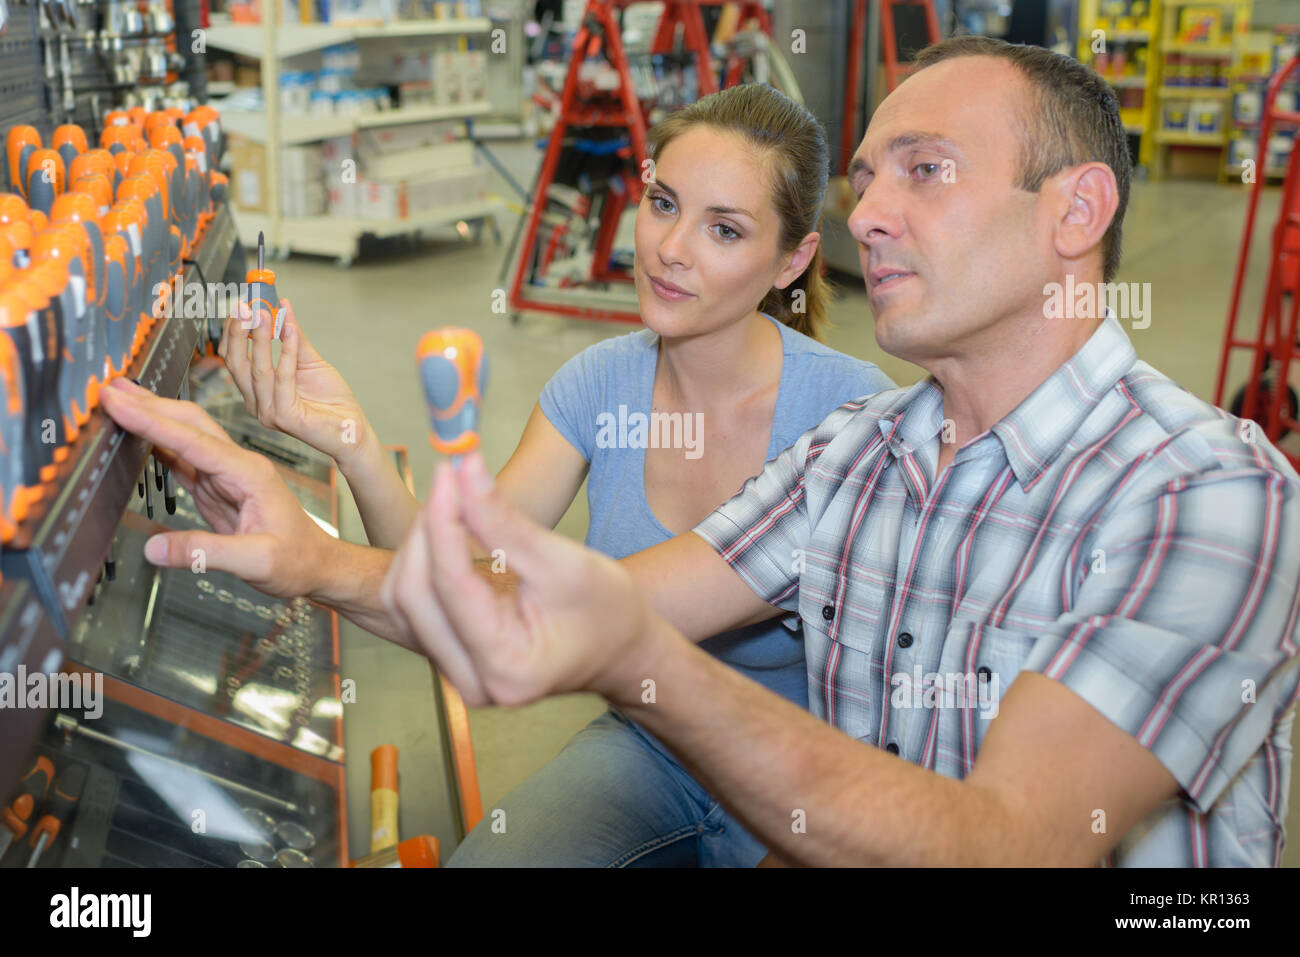 types of screwdrivers - Stock Image